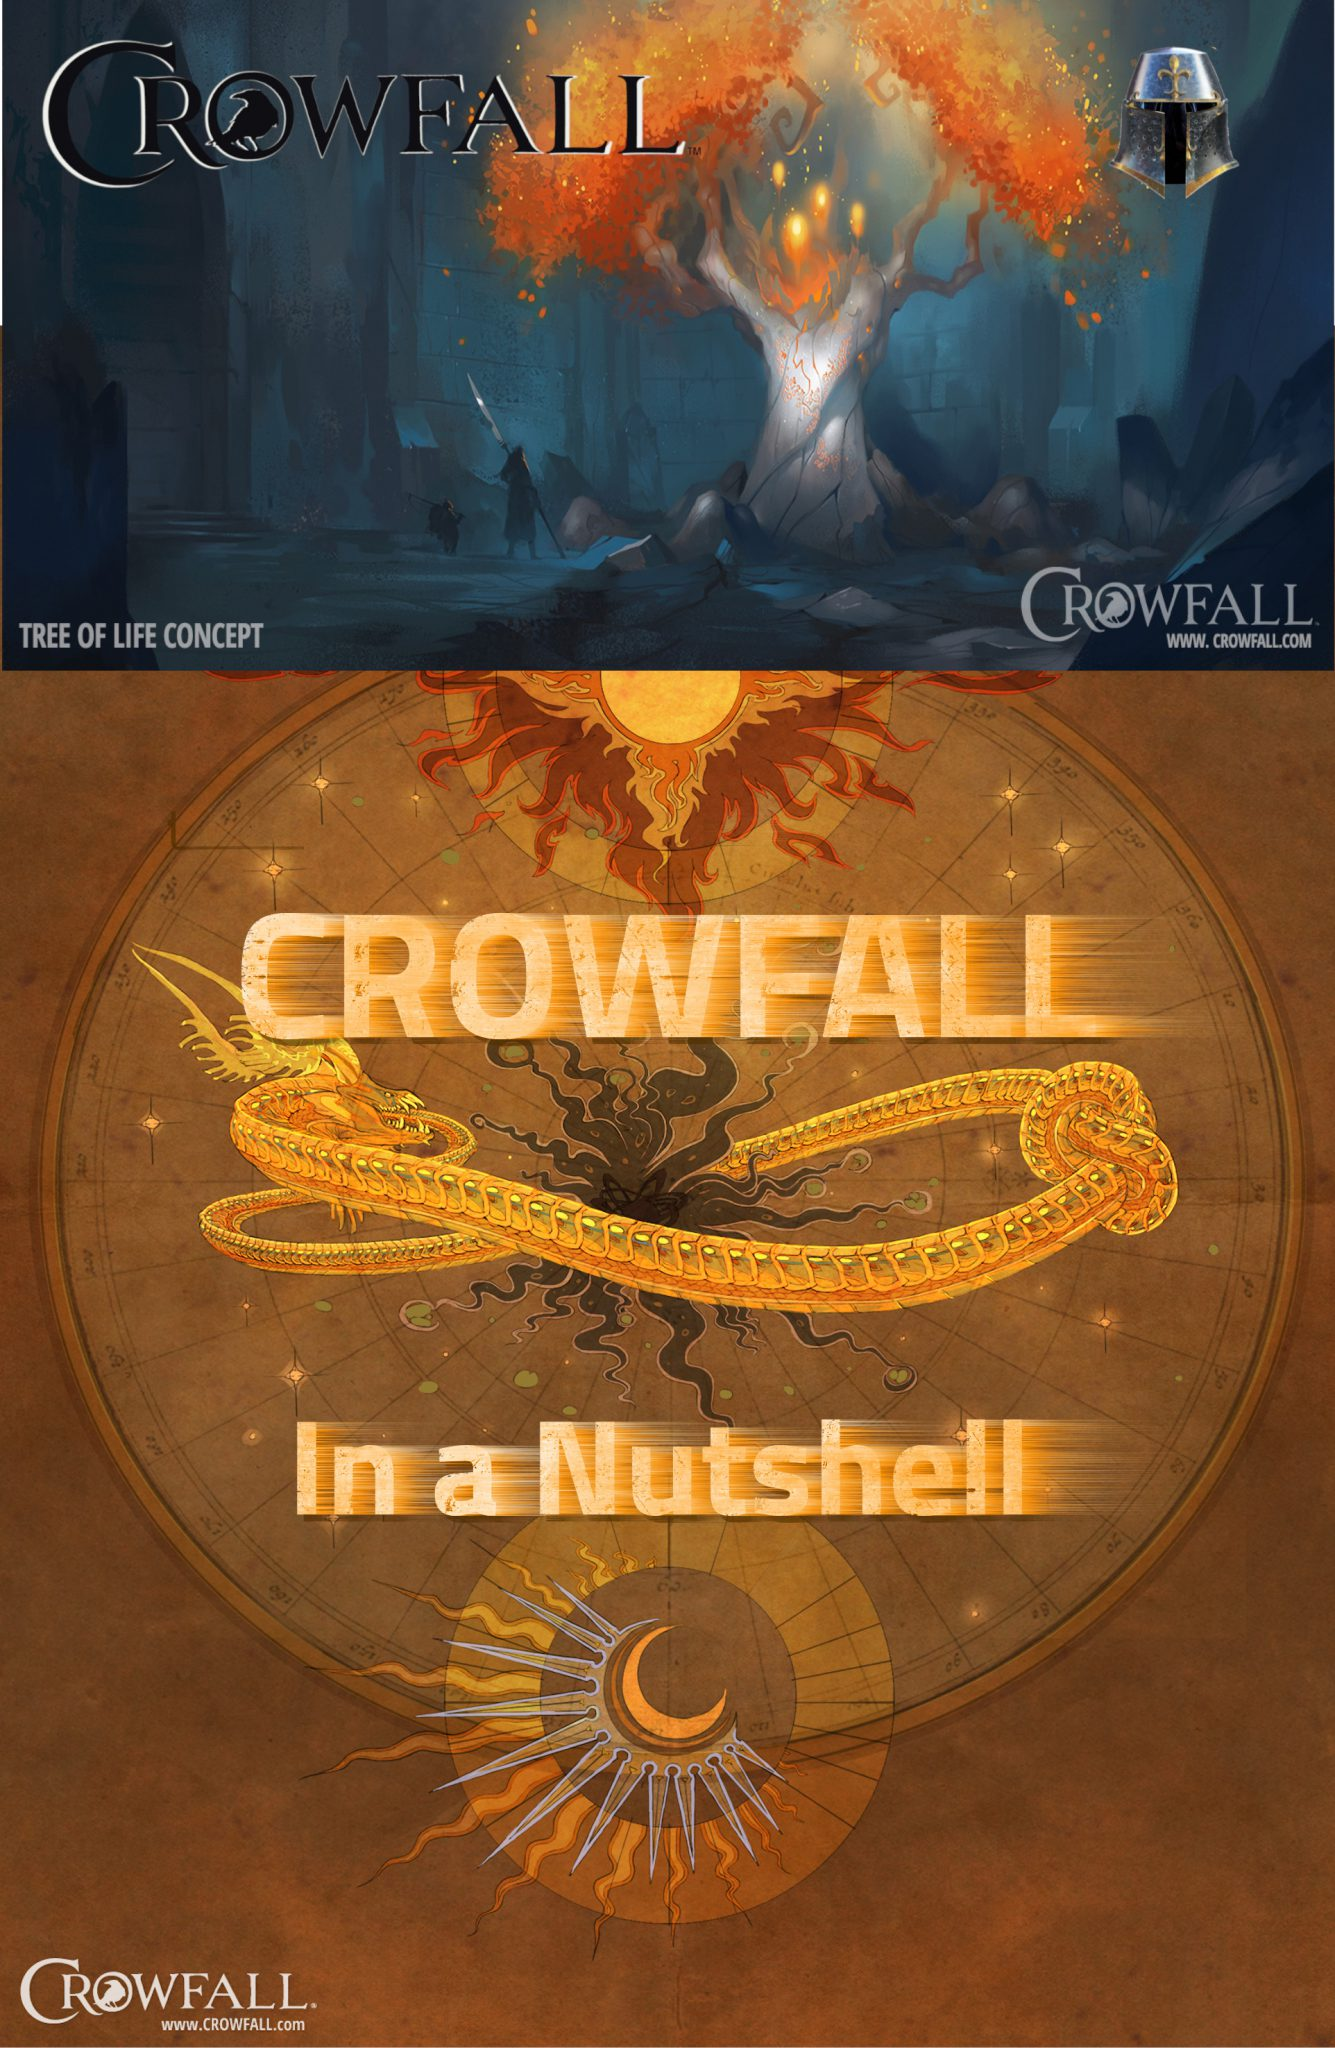 Crowfall in a Nutshell